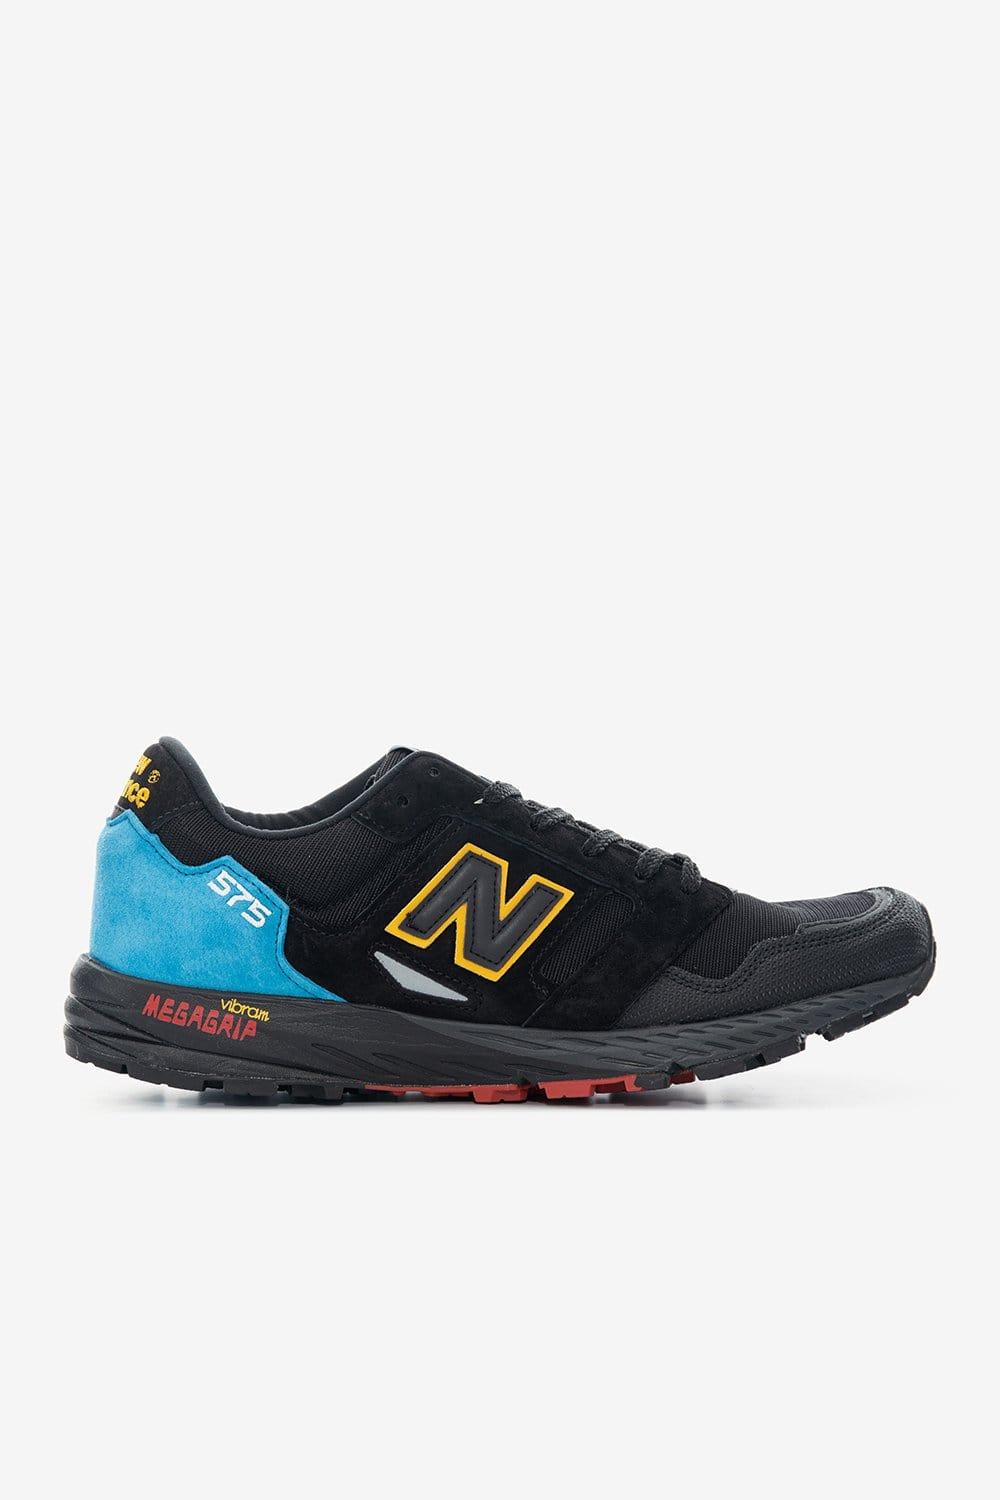 New Balance Footwear MADE 575 Urban Peak